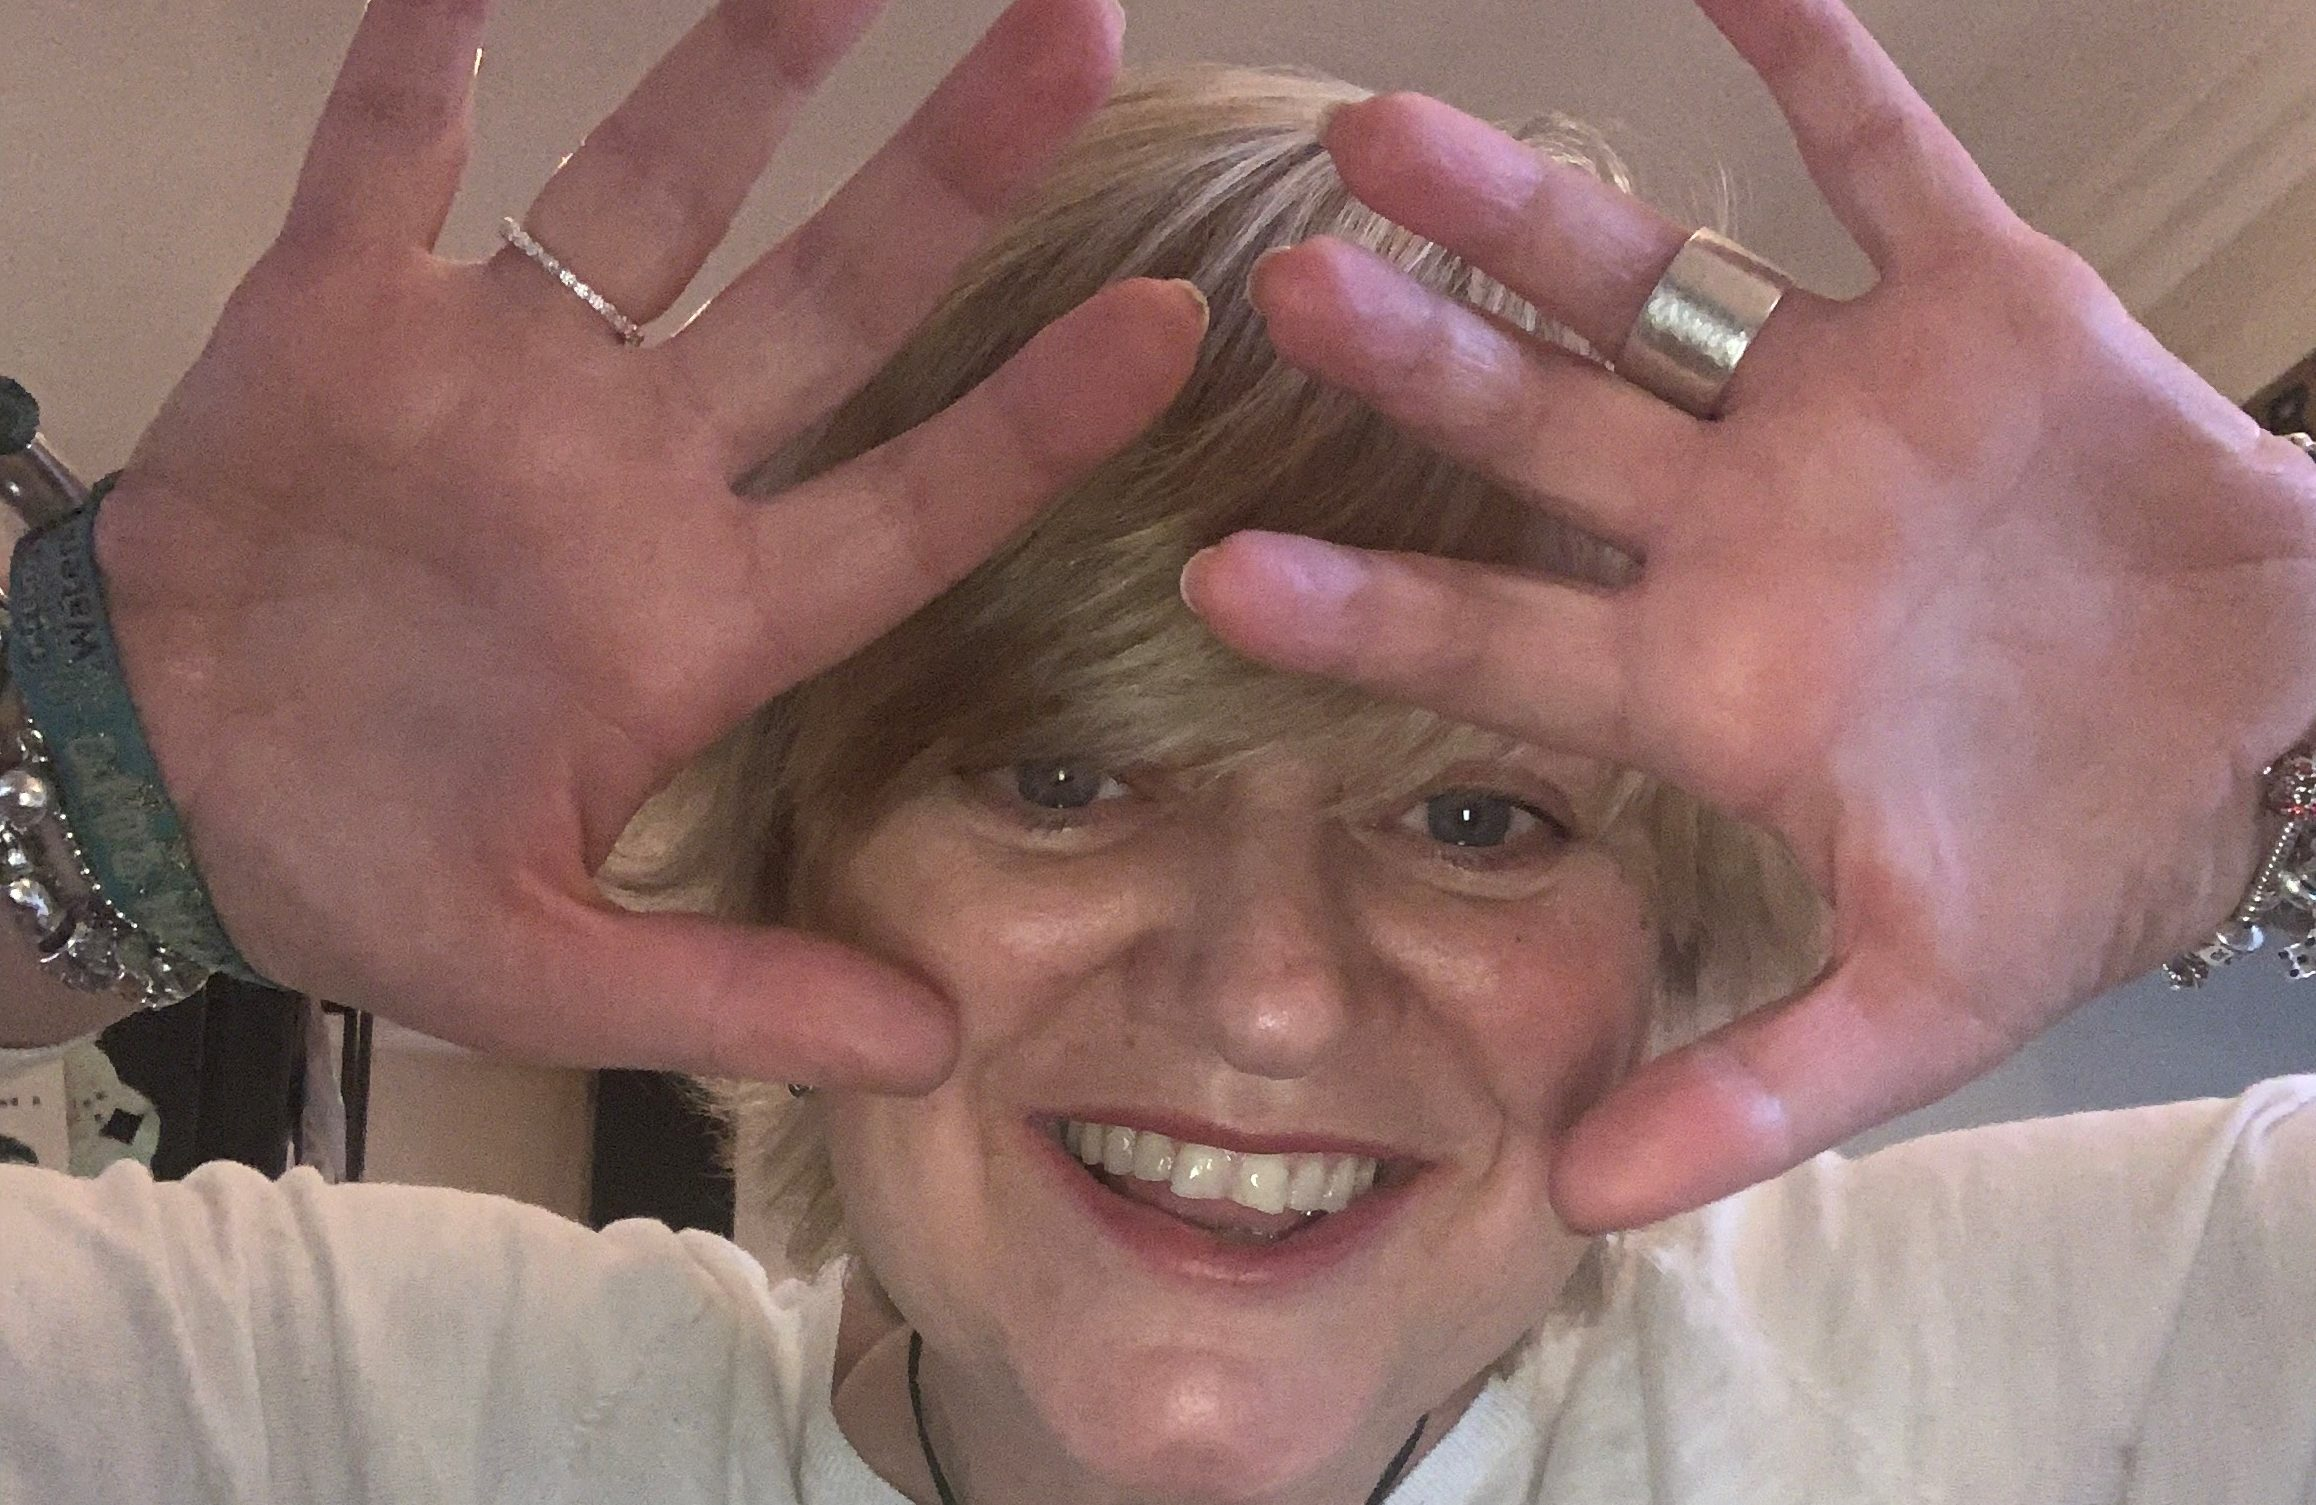 Cor celebrates the first anniversary of her hand transplant